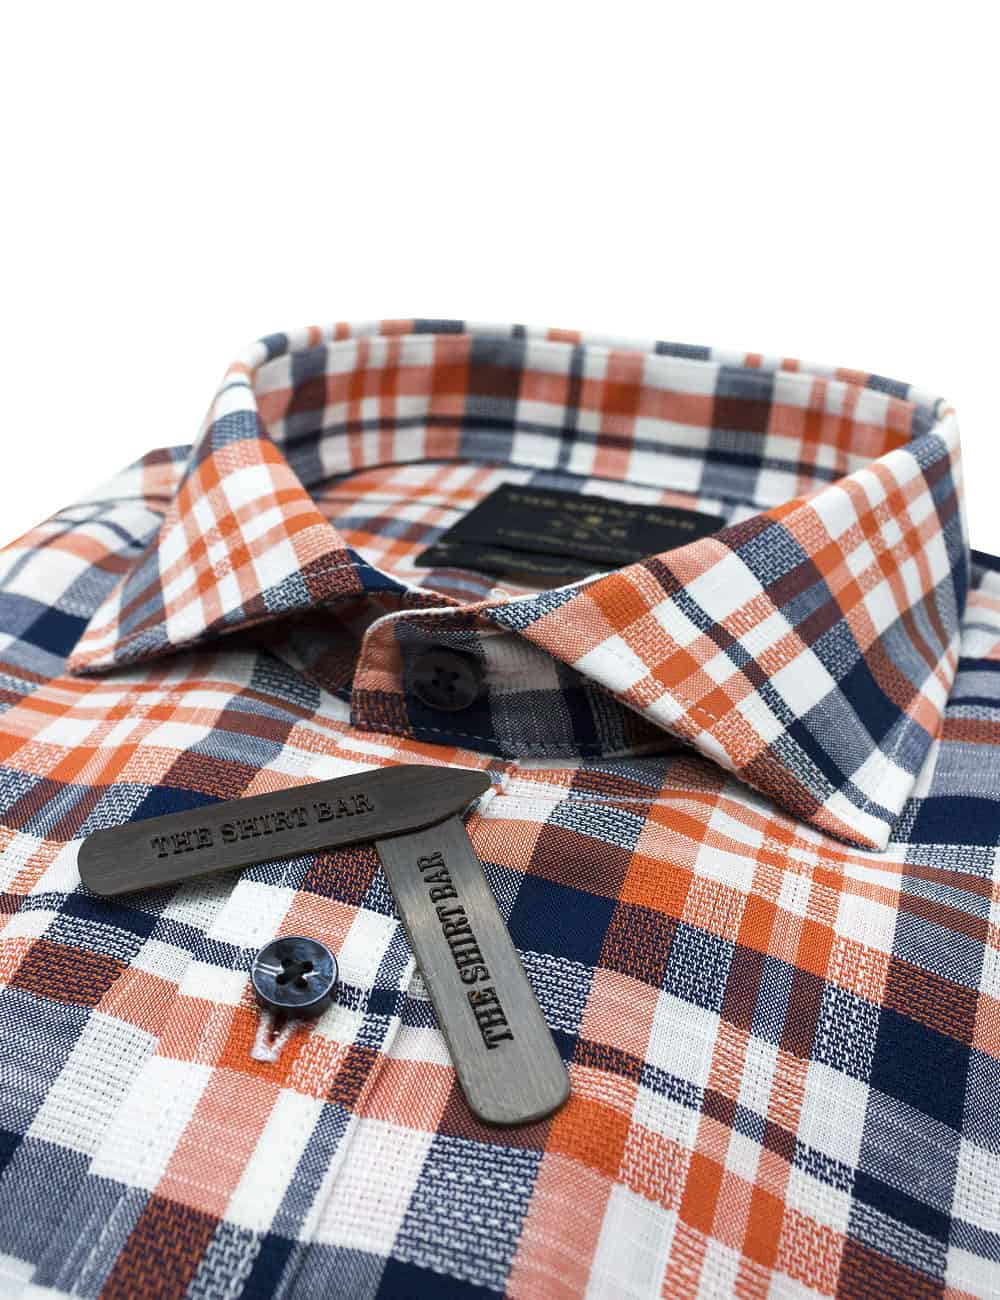 TF Navy and Orange Checks 00% Premium Cotton Long Sleeve Single Cuff Shirt TF1A20.6